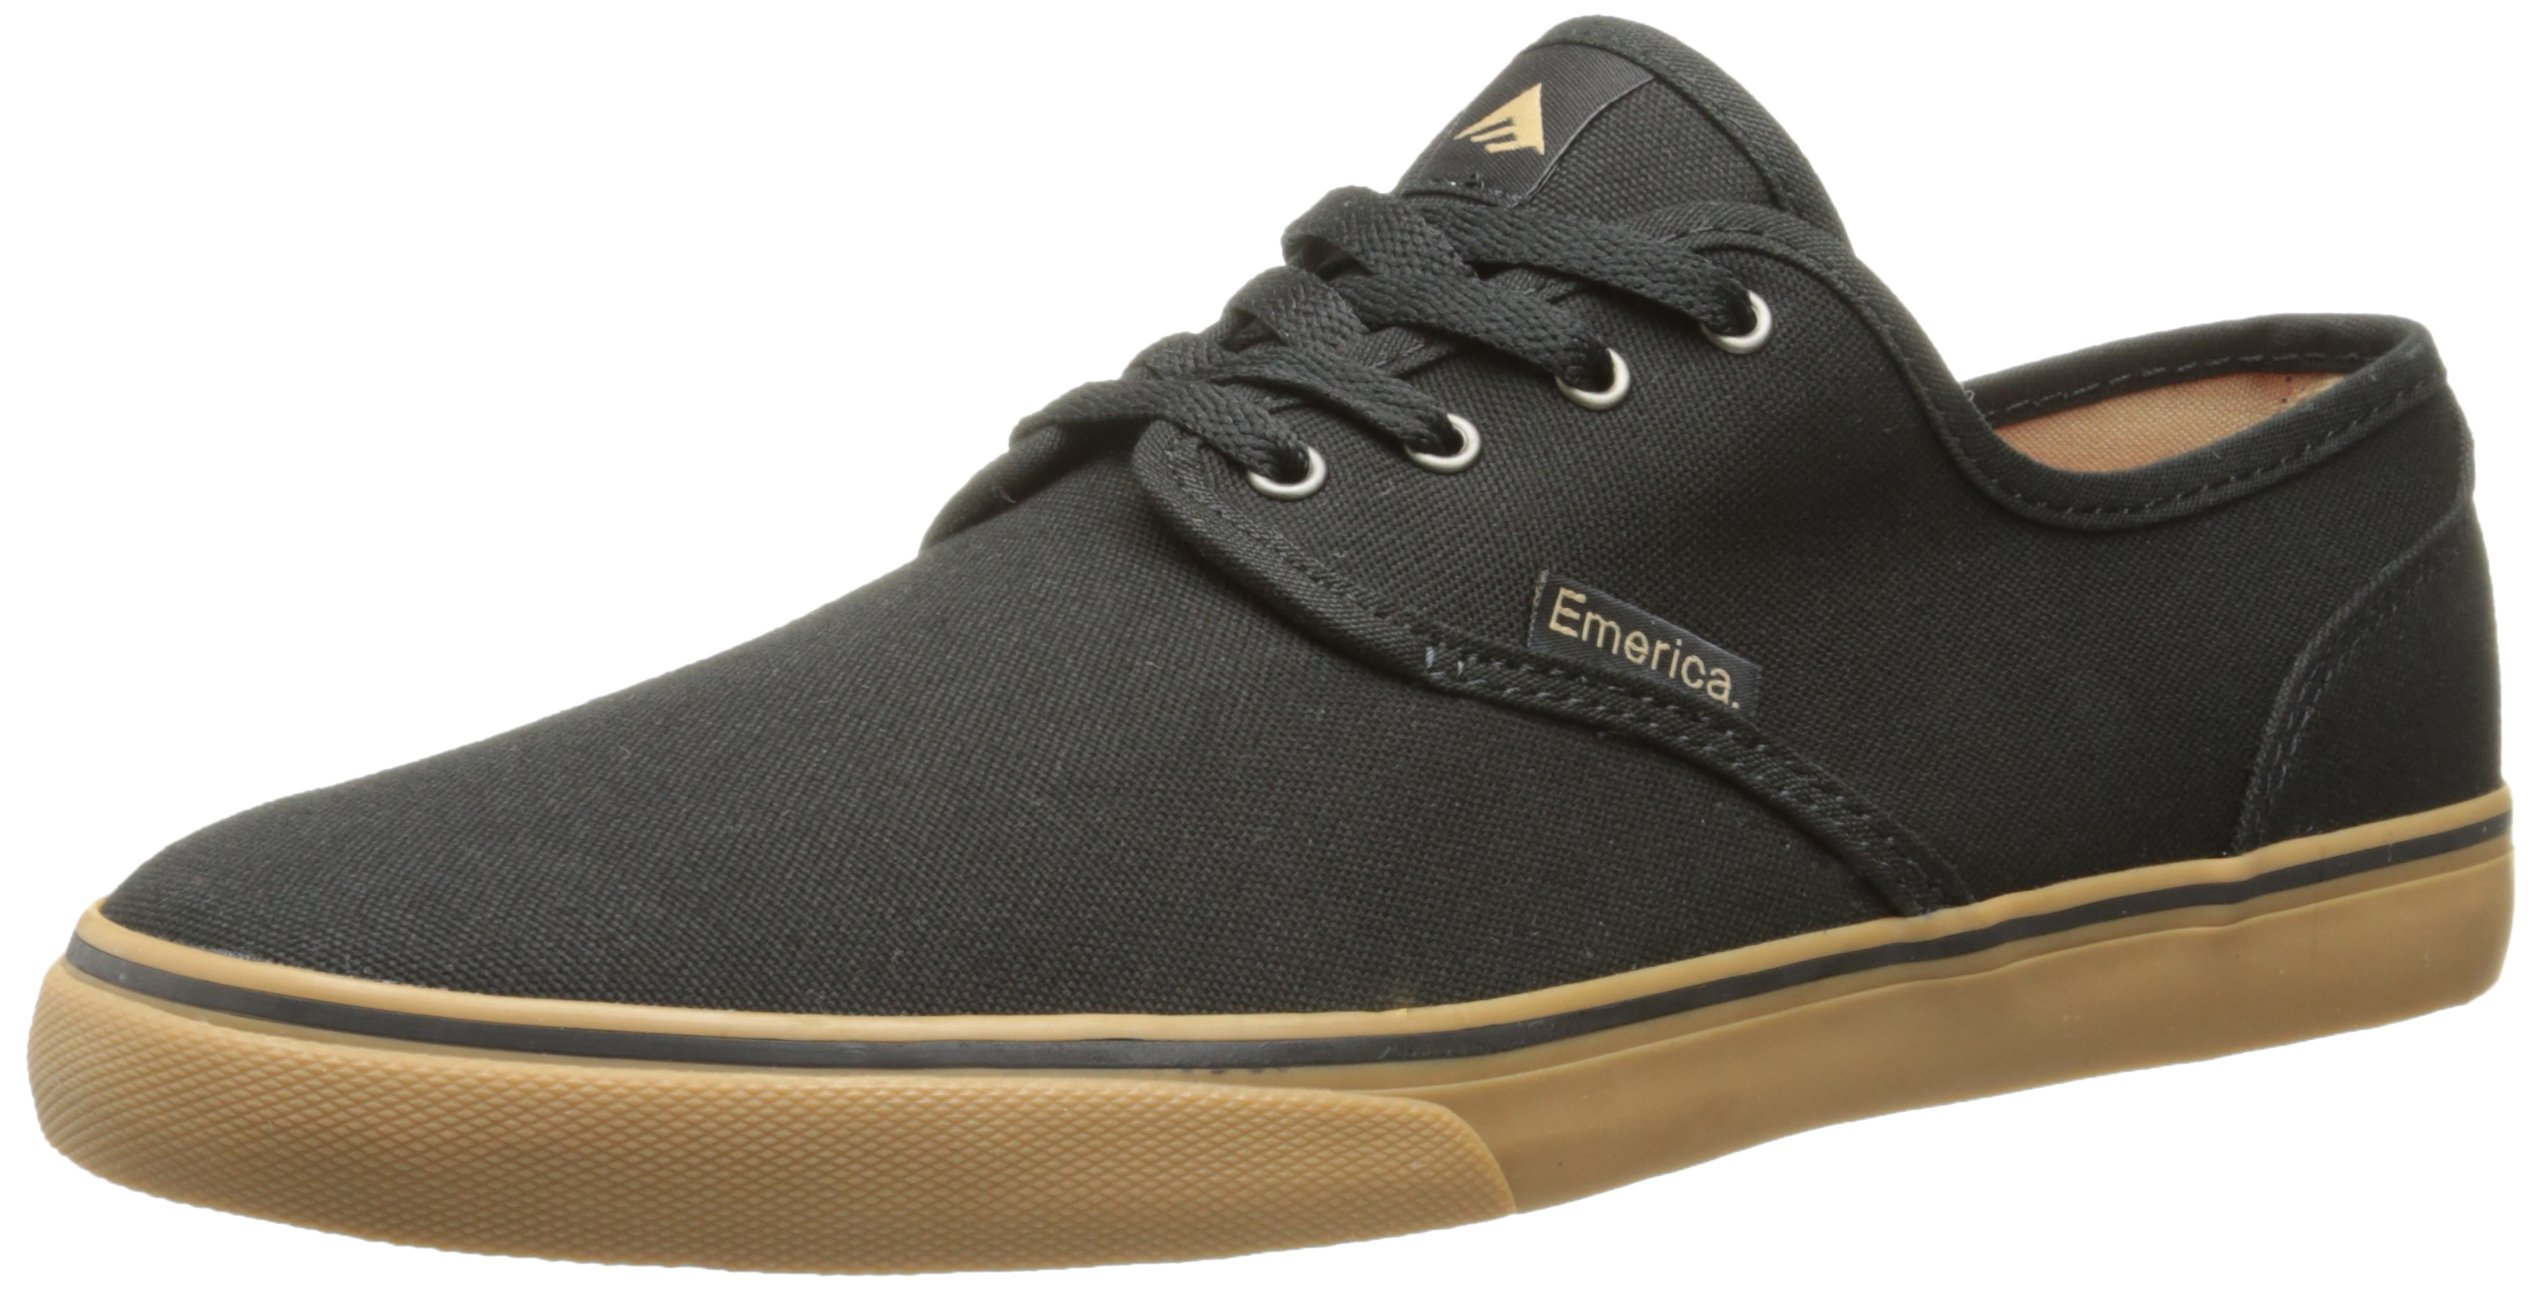 Emerica Men's Wino Cruiser Skateboard Shoe, Black/Gum, 10.5 M US by Emerica